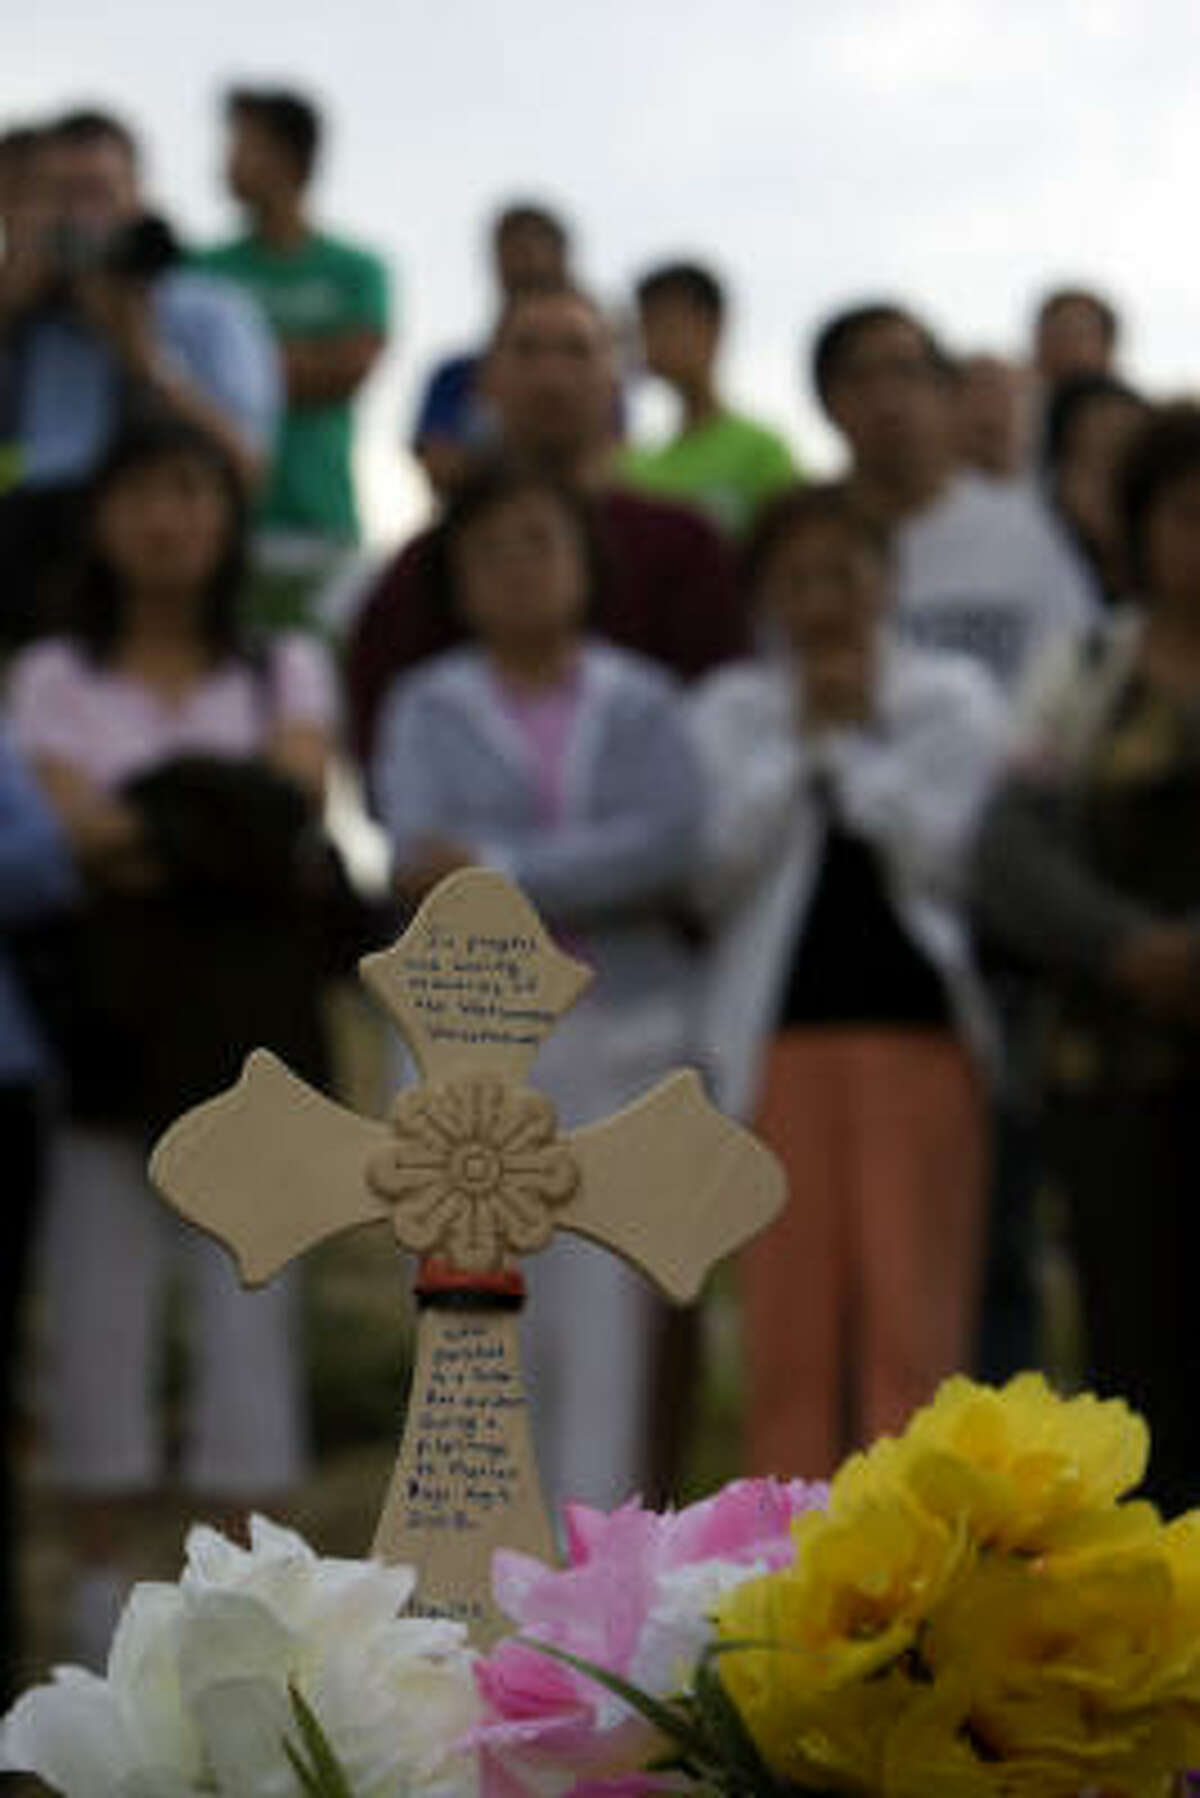 Pilgrims coming from the Marian Days religious festival in Missouri stopped alongside the road in Sherman on Sunday to pay respects to those killed in the bus crash.